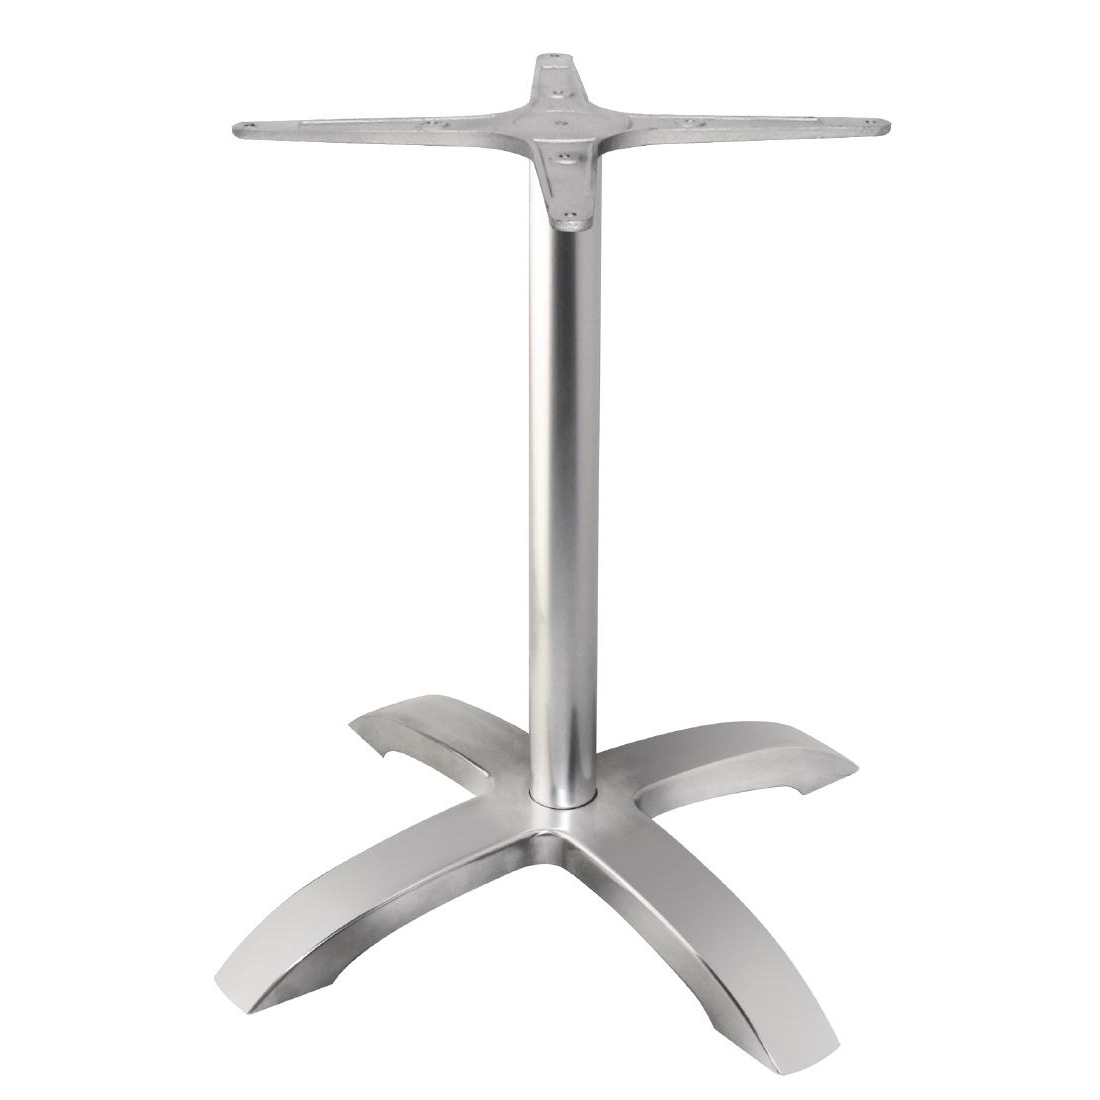 Pied de table base 4 branches aluminium brossé